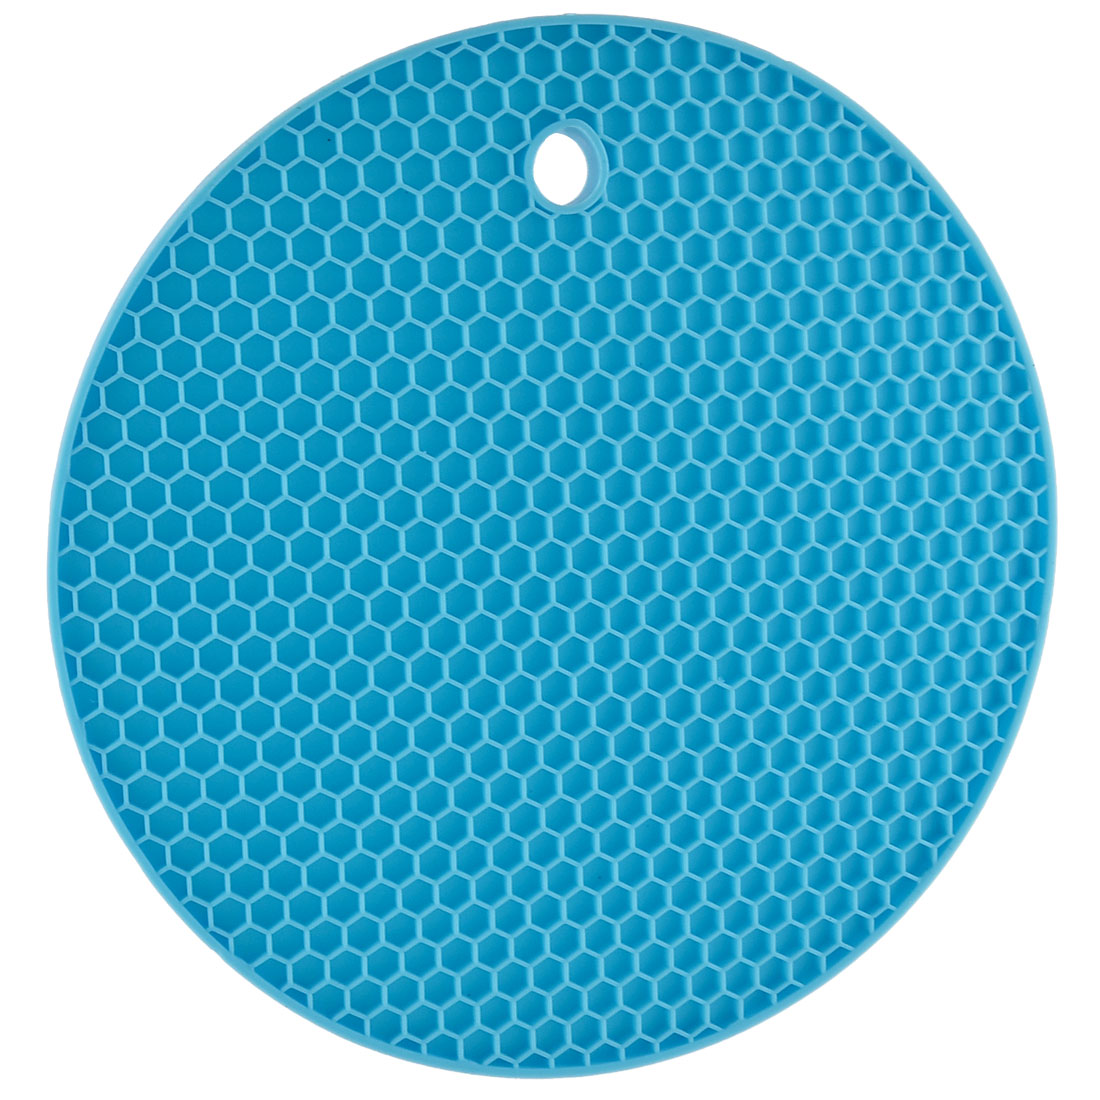 Household Round Shaped Nonslip Heat Insulated Hot Pot Mat Pad Holder Cyan